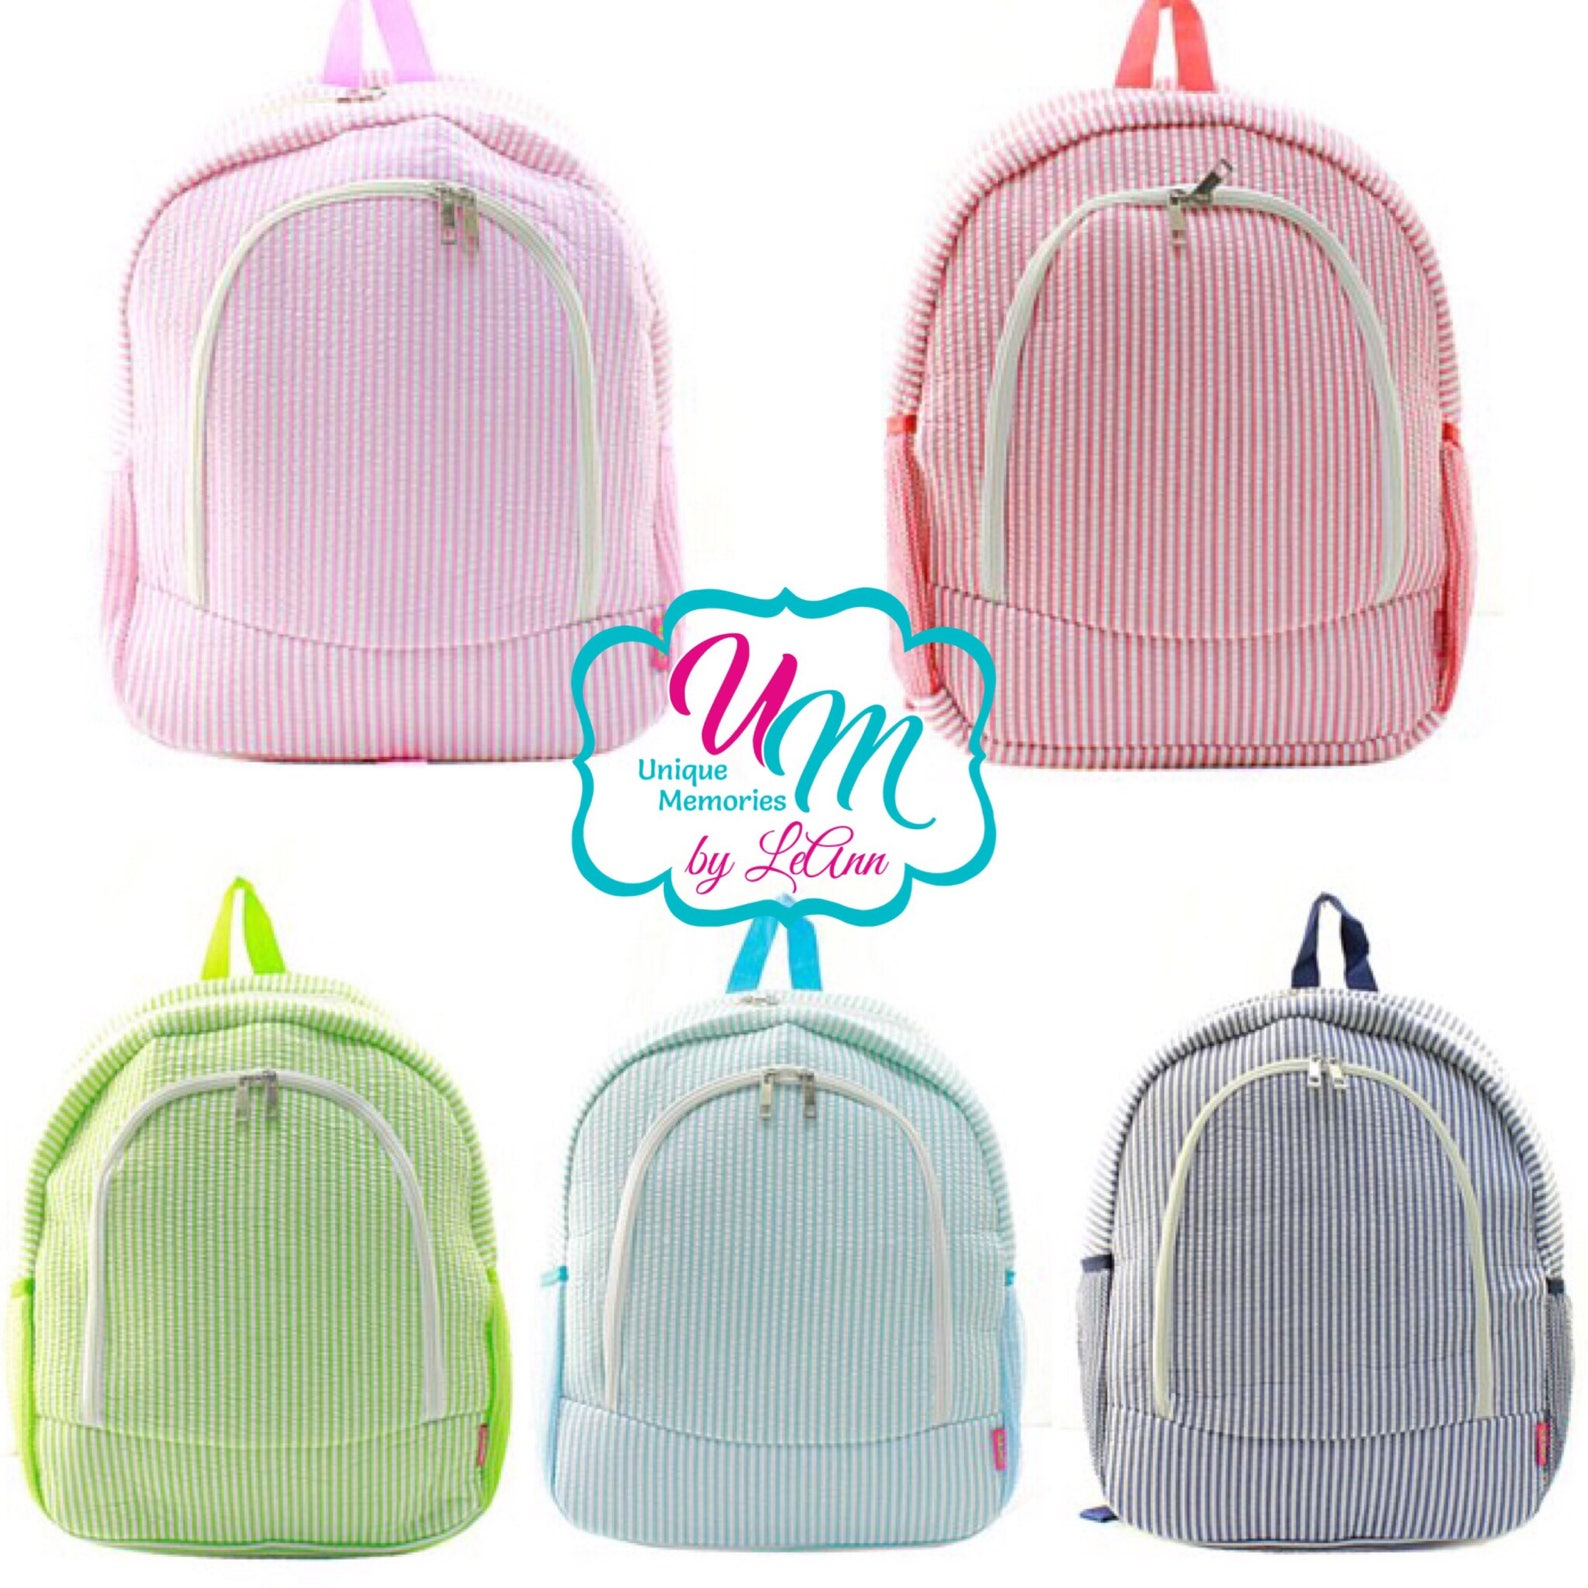 seersucker backpack ballet shoes applique with free name or monogram - school bag, large bookbag, children's backpack, quilt